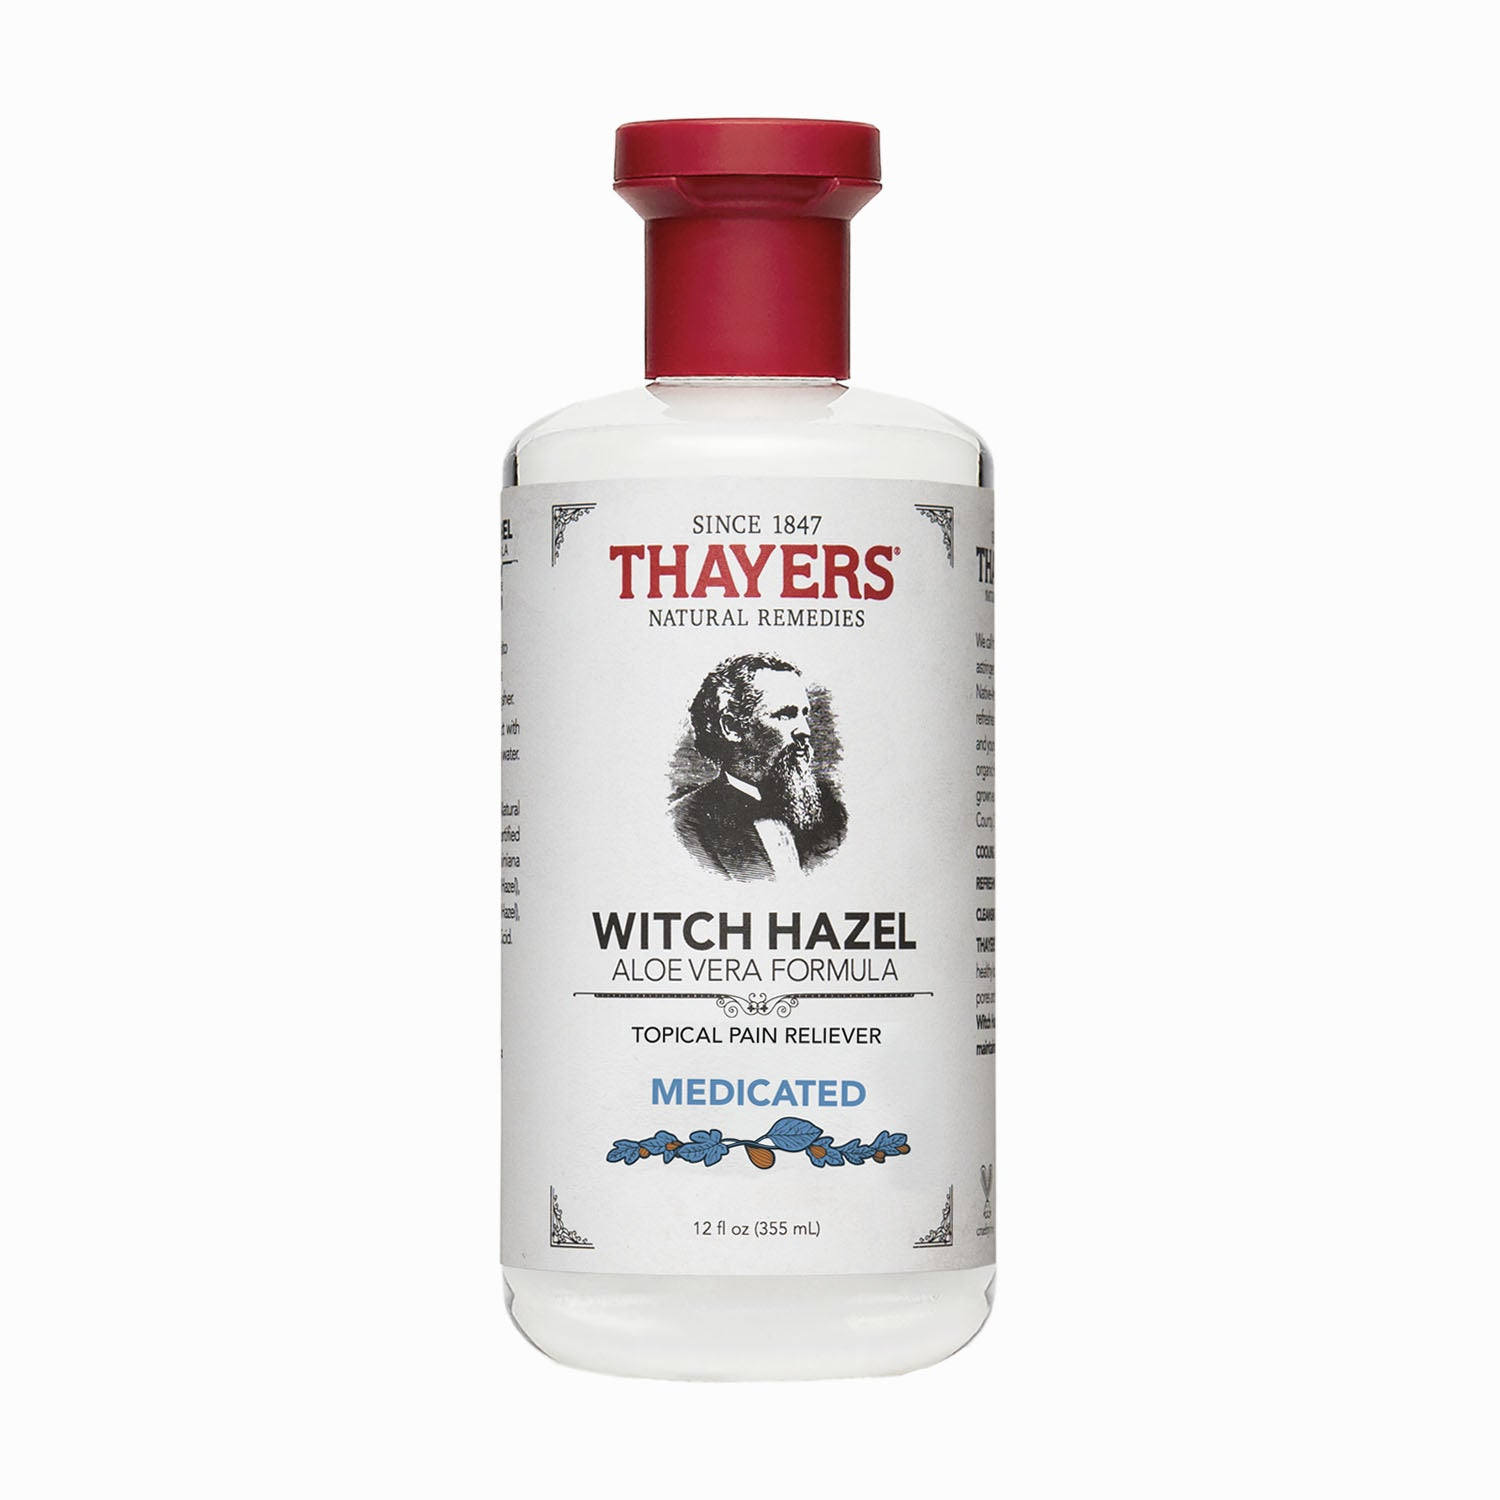 Thayers - Medicated Superhazel Topical Pain Reliever 12 oz Bottle - Aftershave Splash